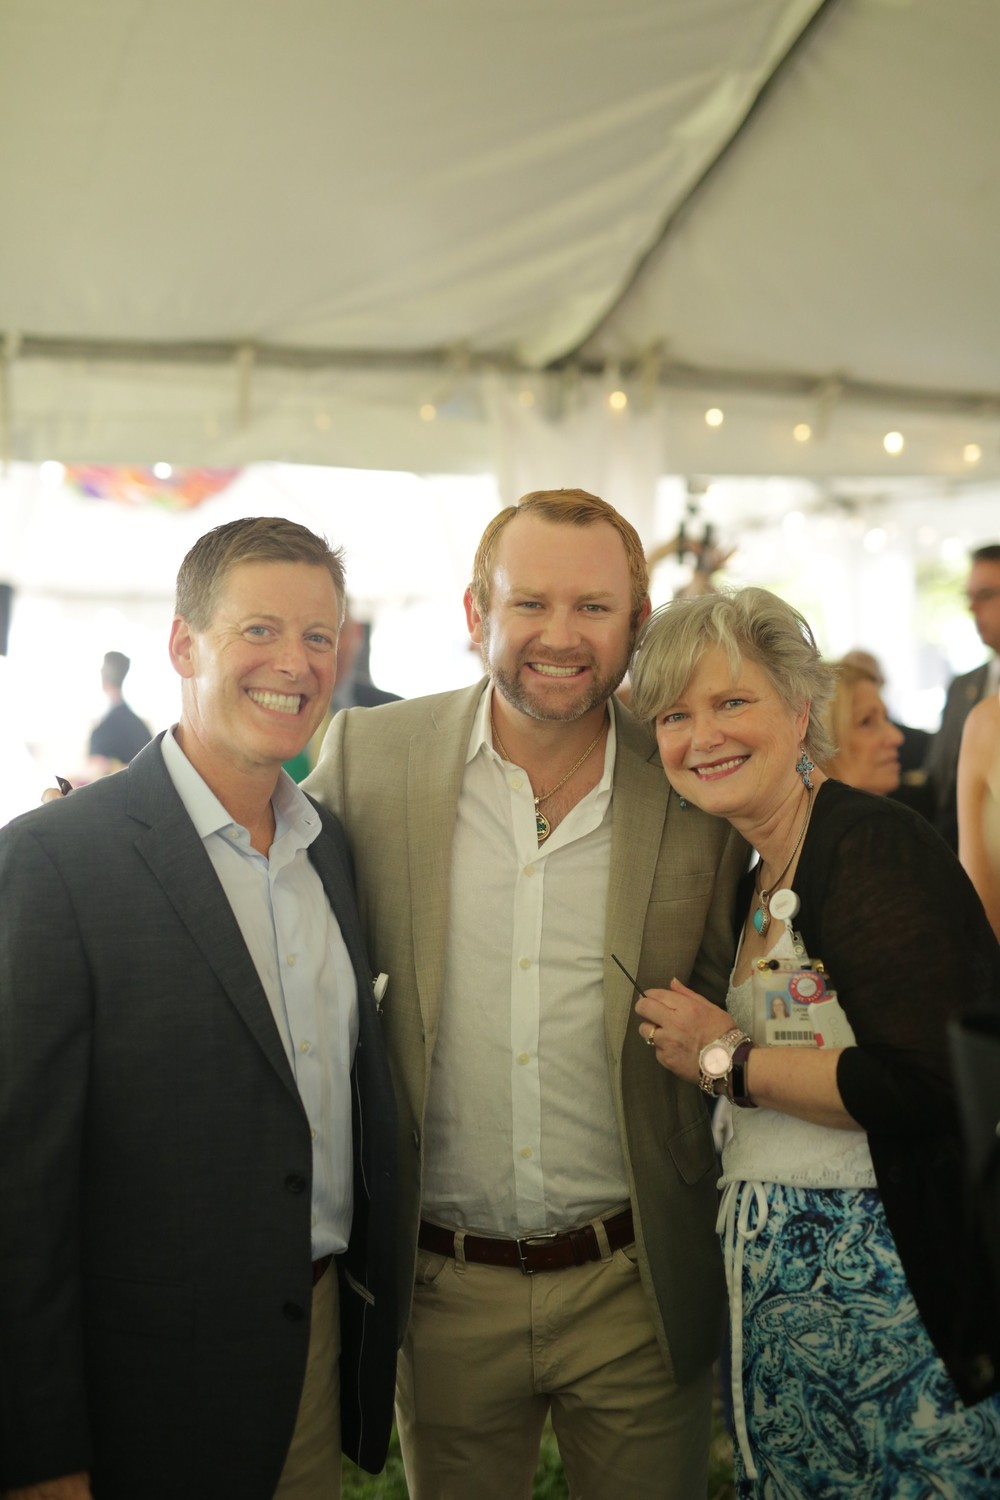 Dr. J. Brett Chafin of Nemours, Josh Henry and Catherine Swanson of Nemours